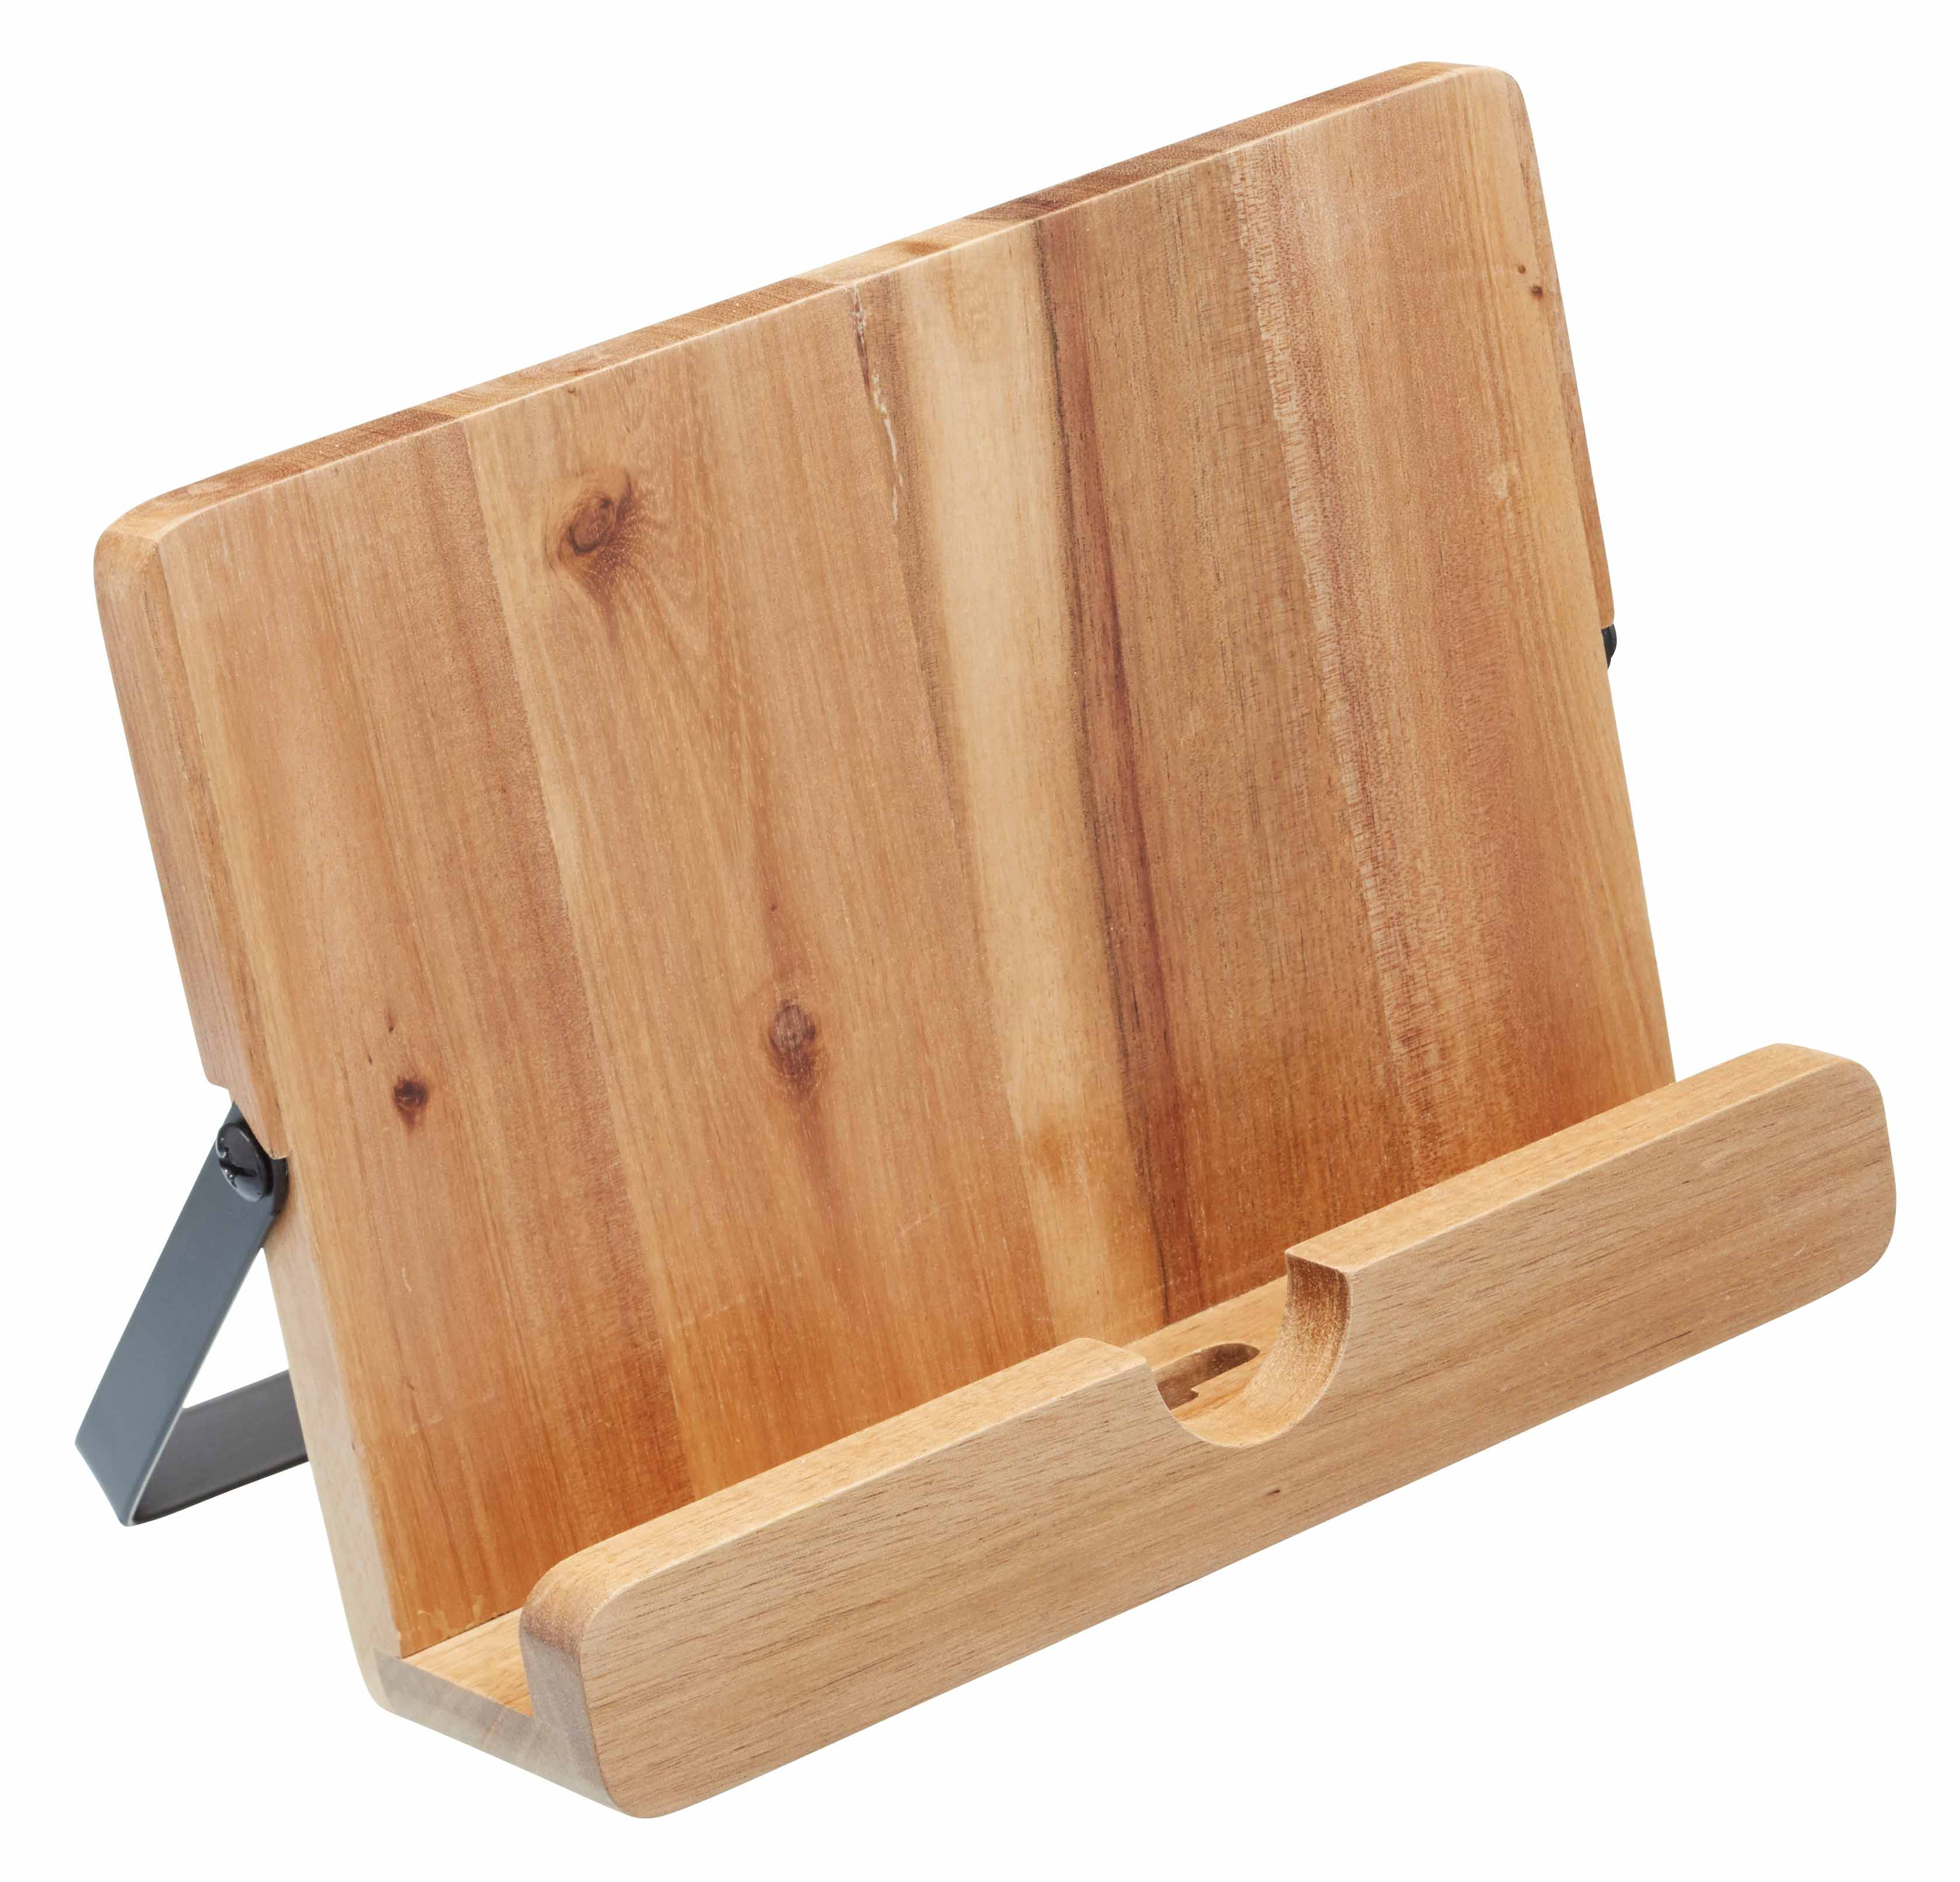 KitchenCraft Natural Elements Acacia Wood Cookbook / Tablet Stand ...